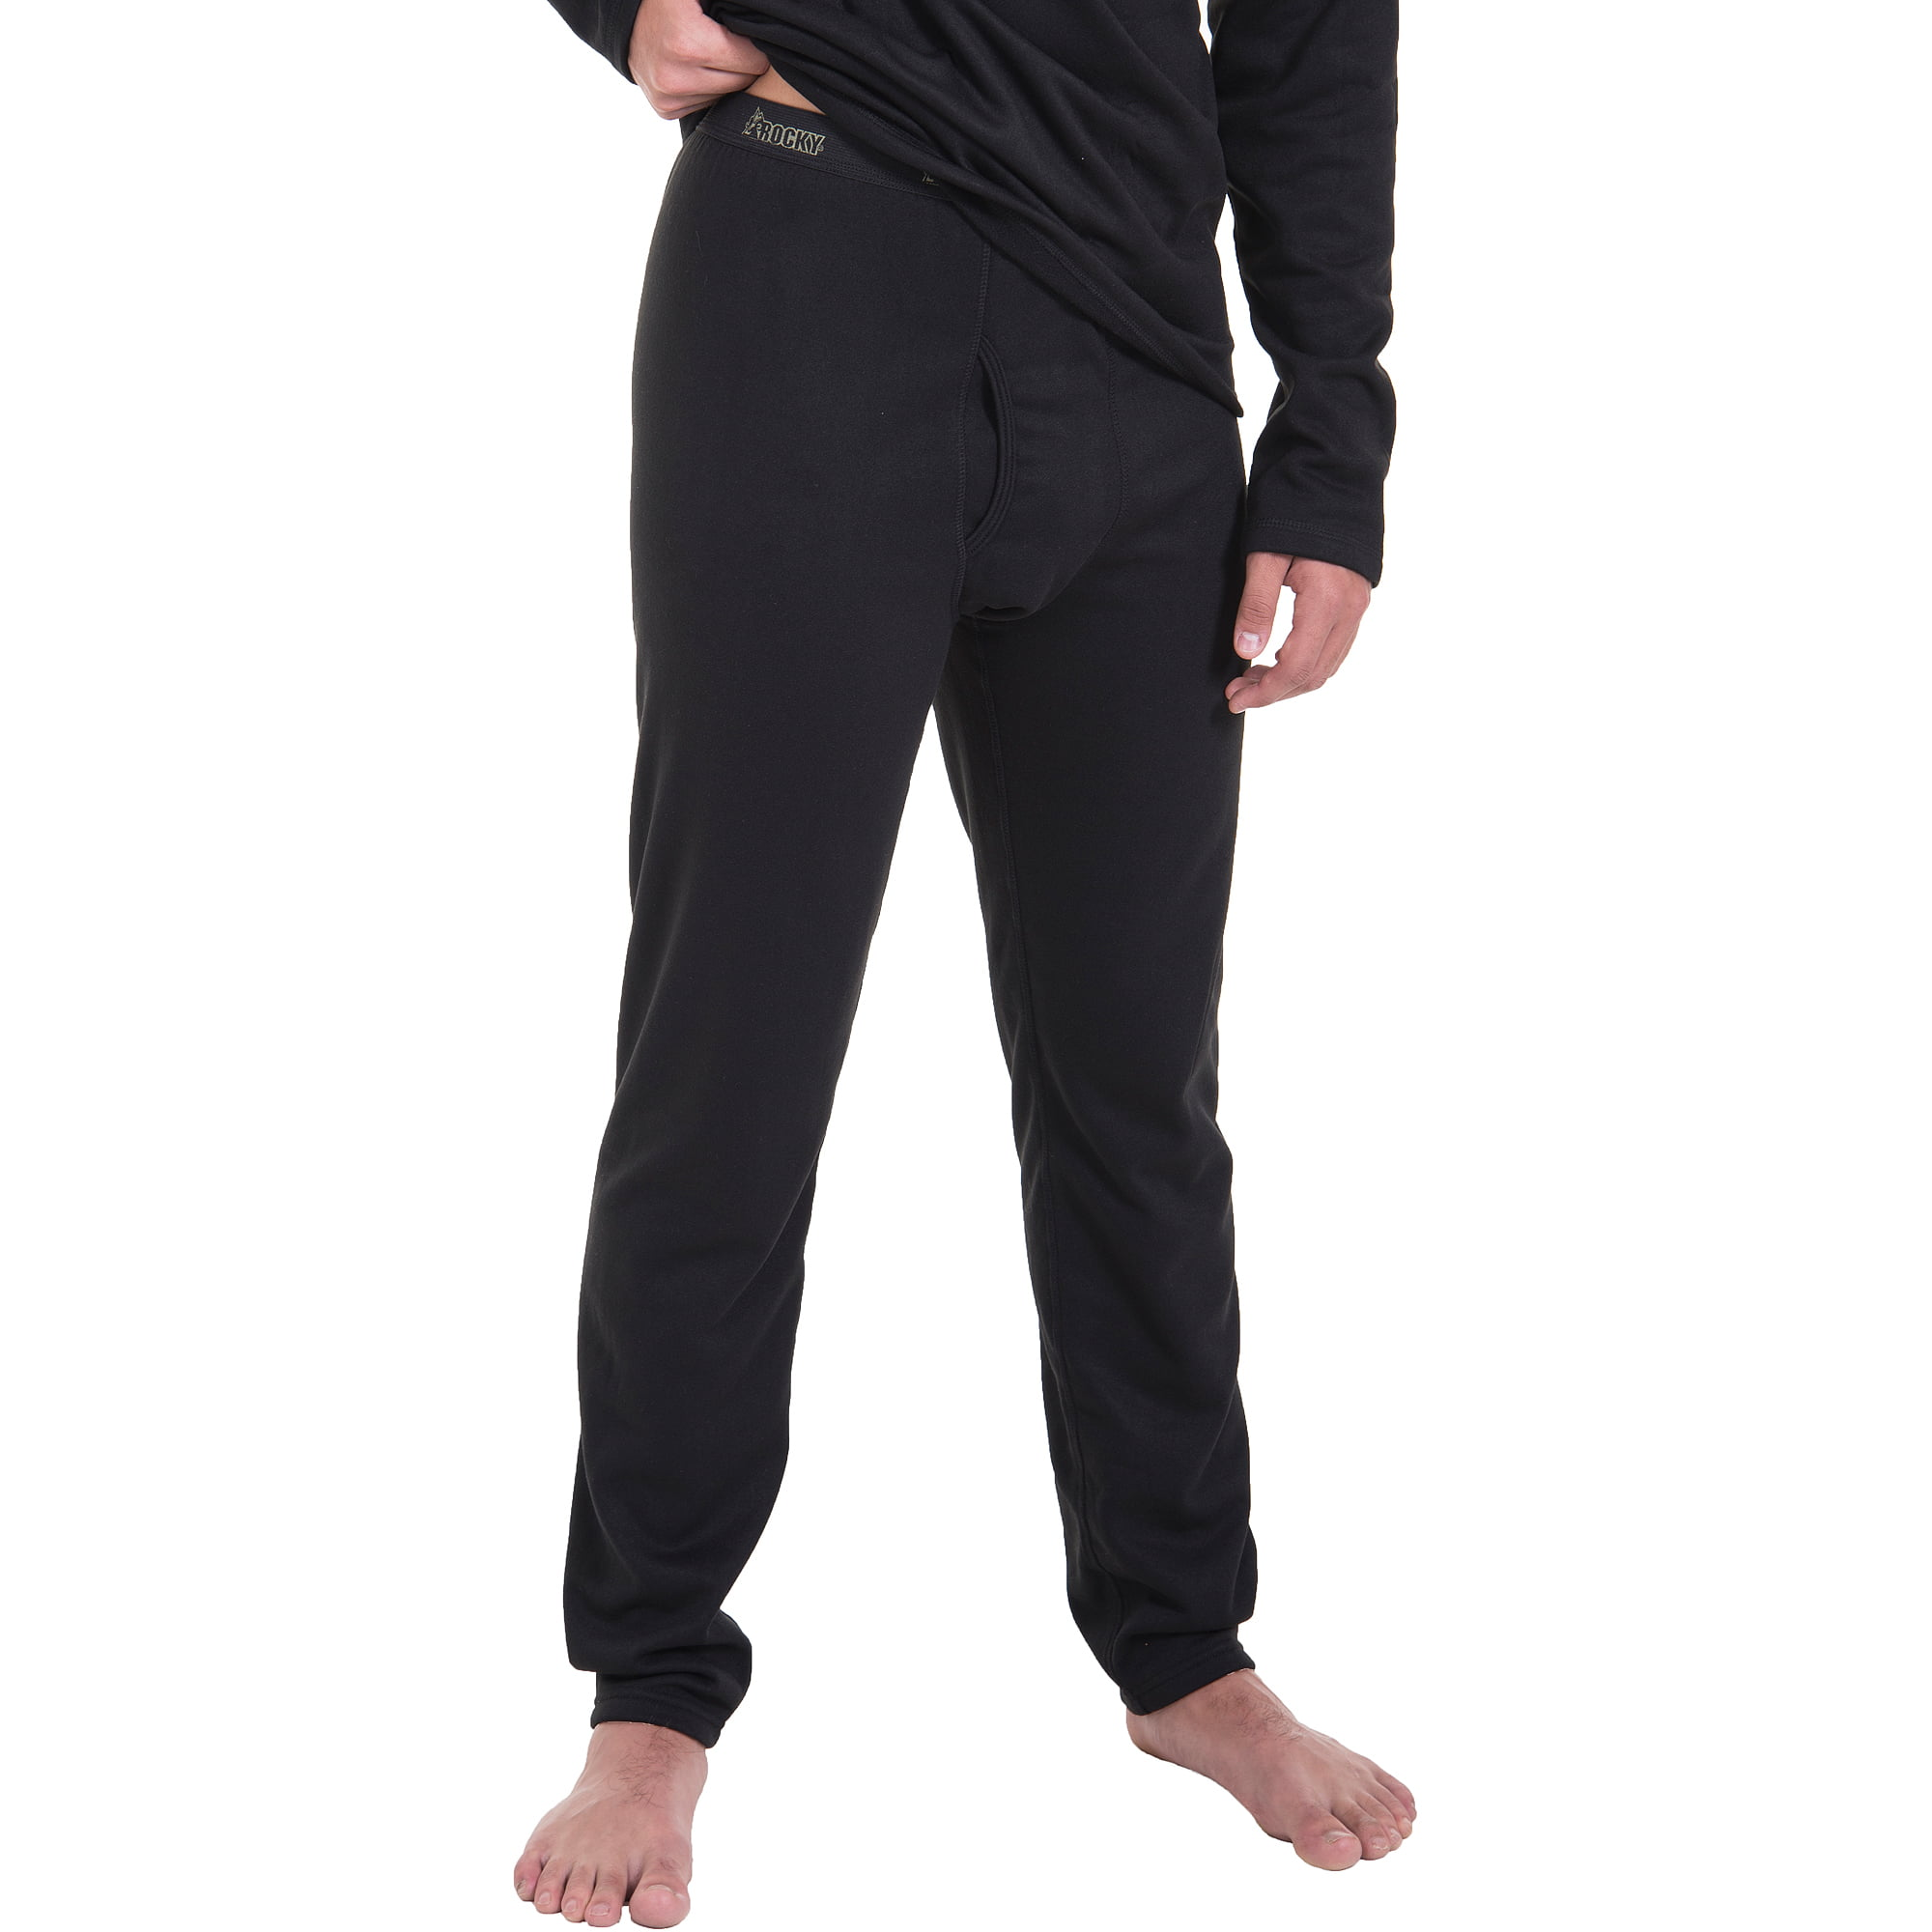 Rocky Men's Heavyweight Fleece Thermal Underwear, Black - Walmart.com